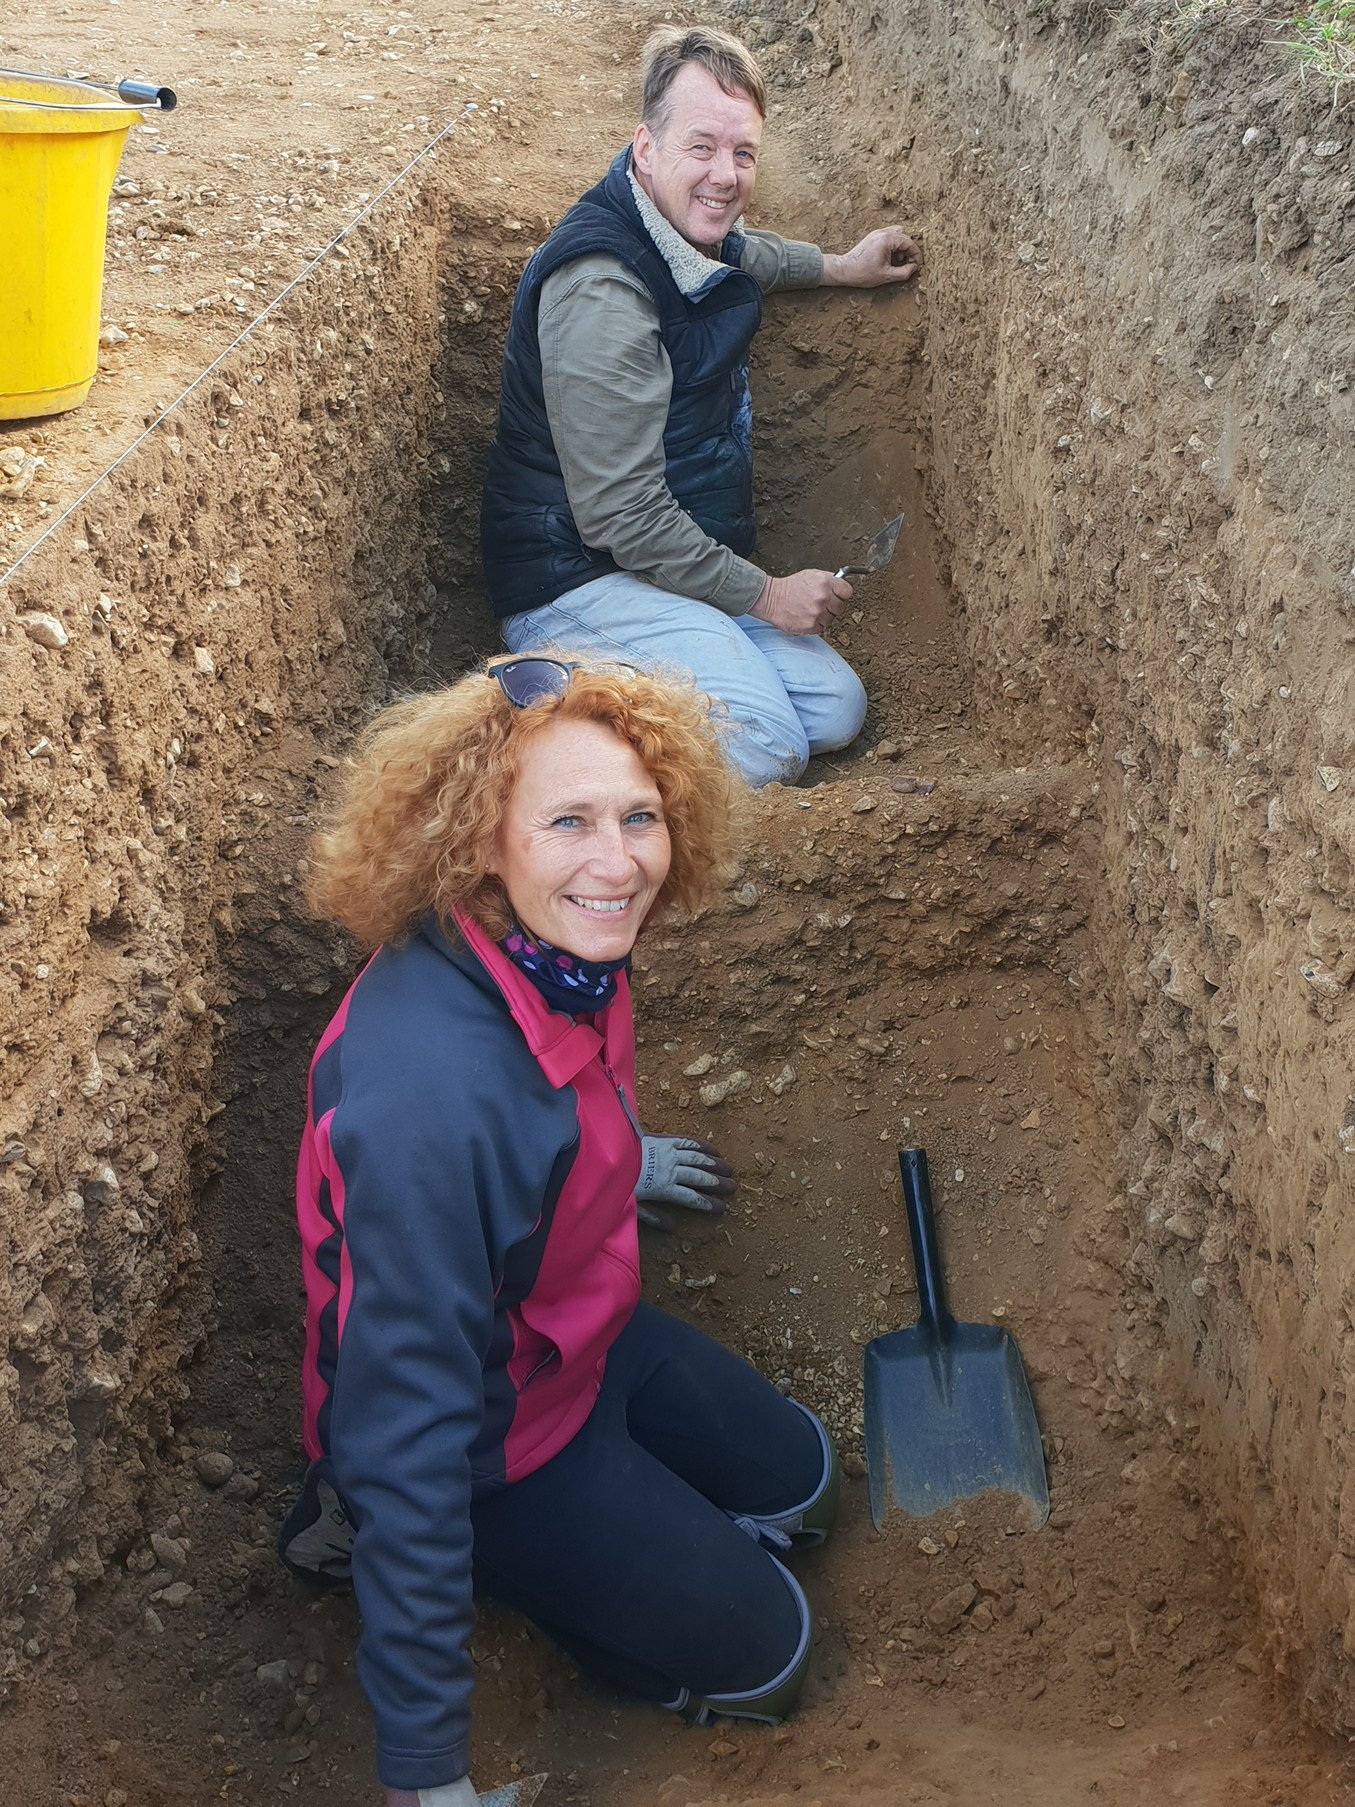 A man and a woman work in an excavation trench